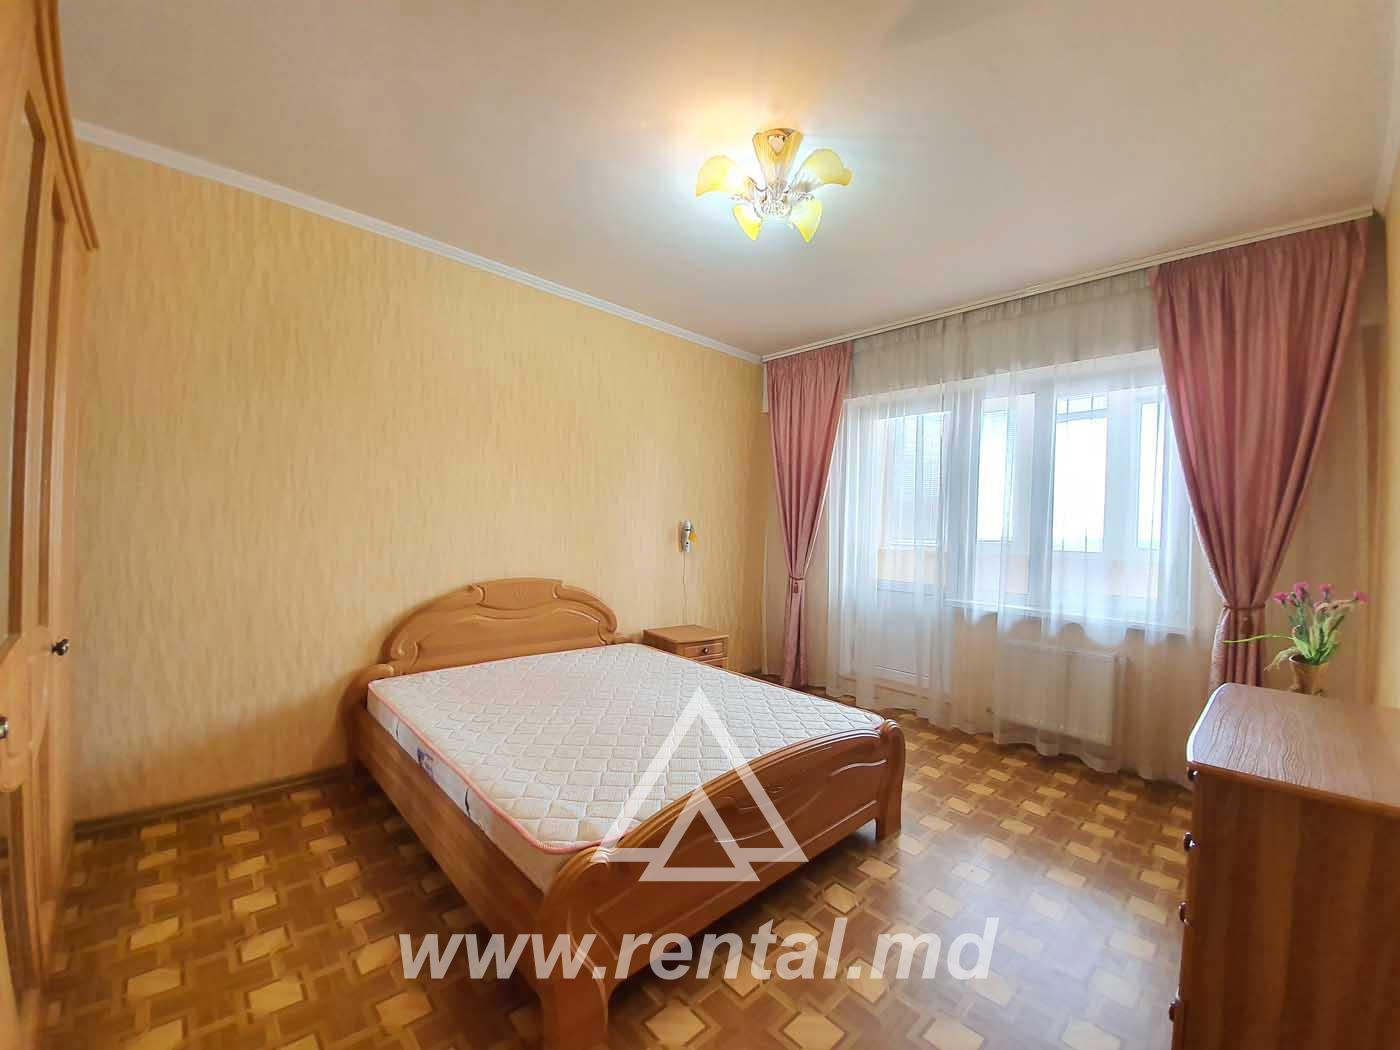 2-rooms apartment for rent in Riscanovca area